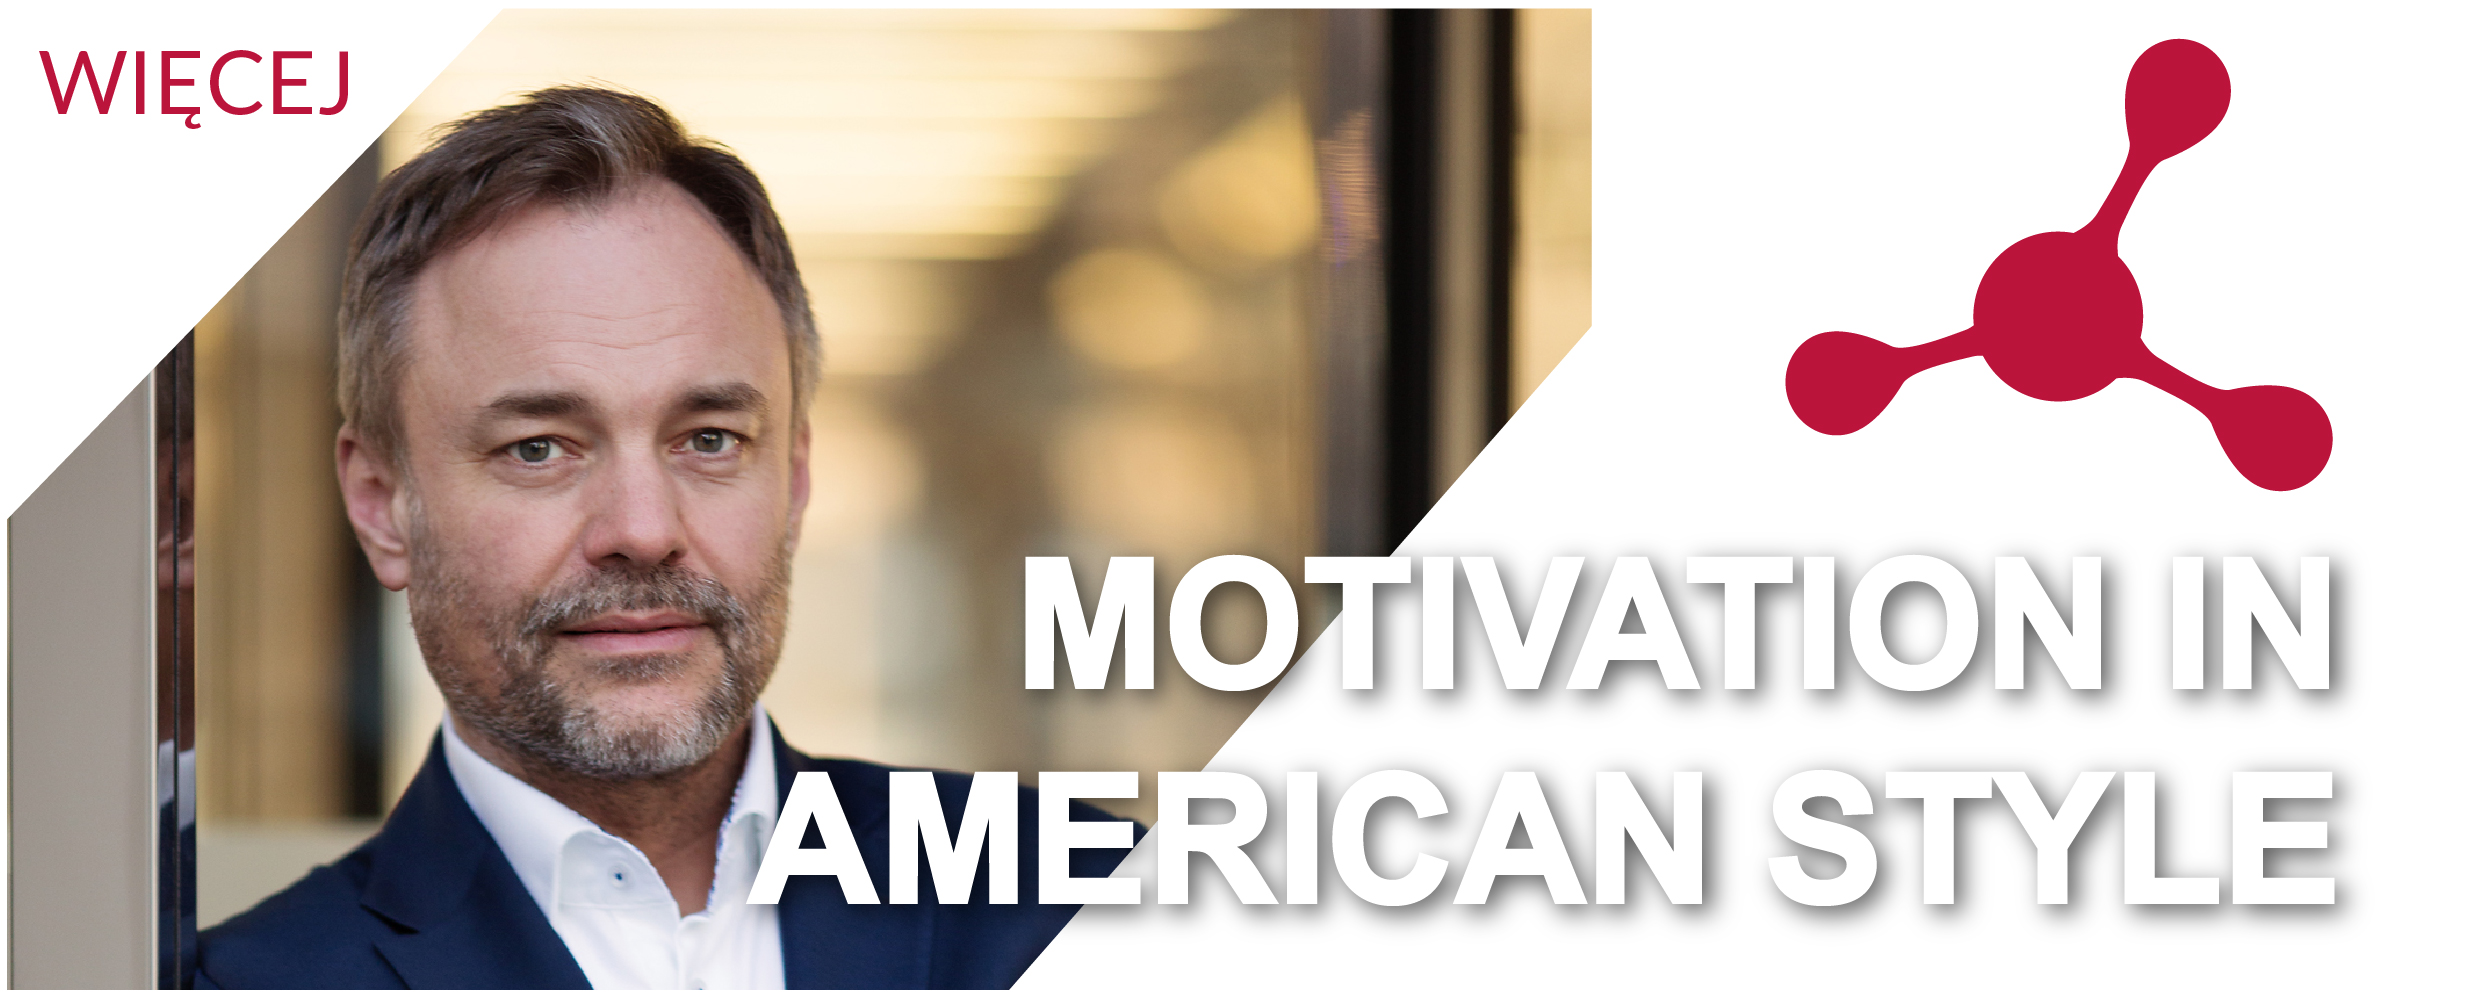 The American style of Motivation.